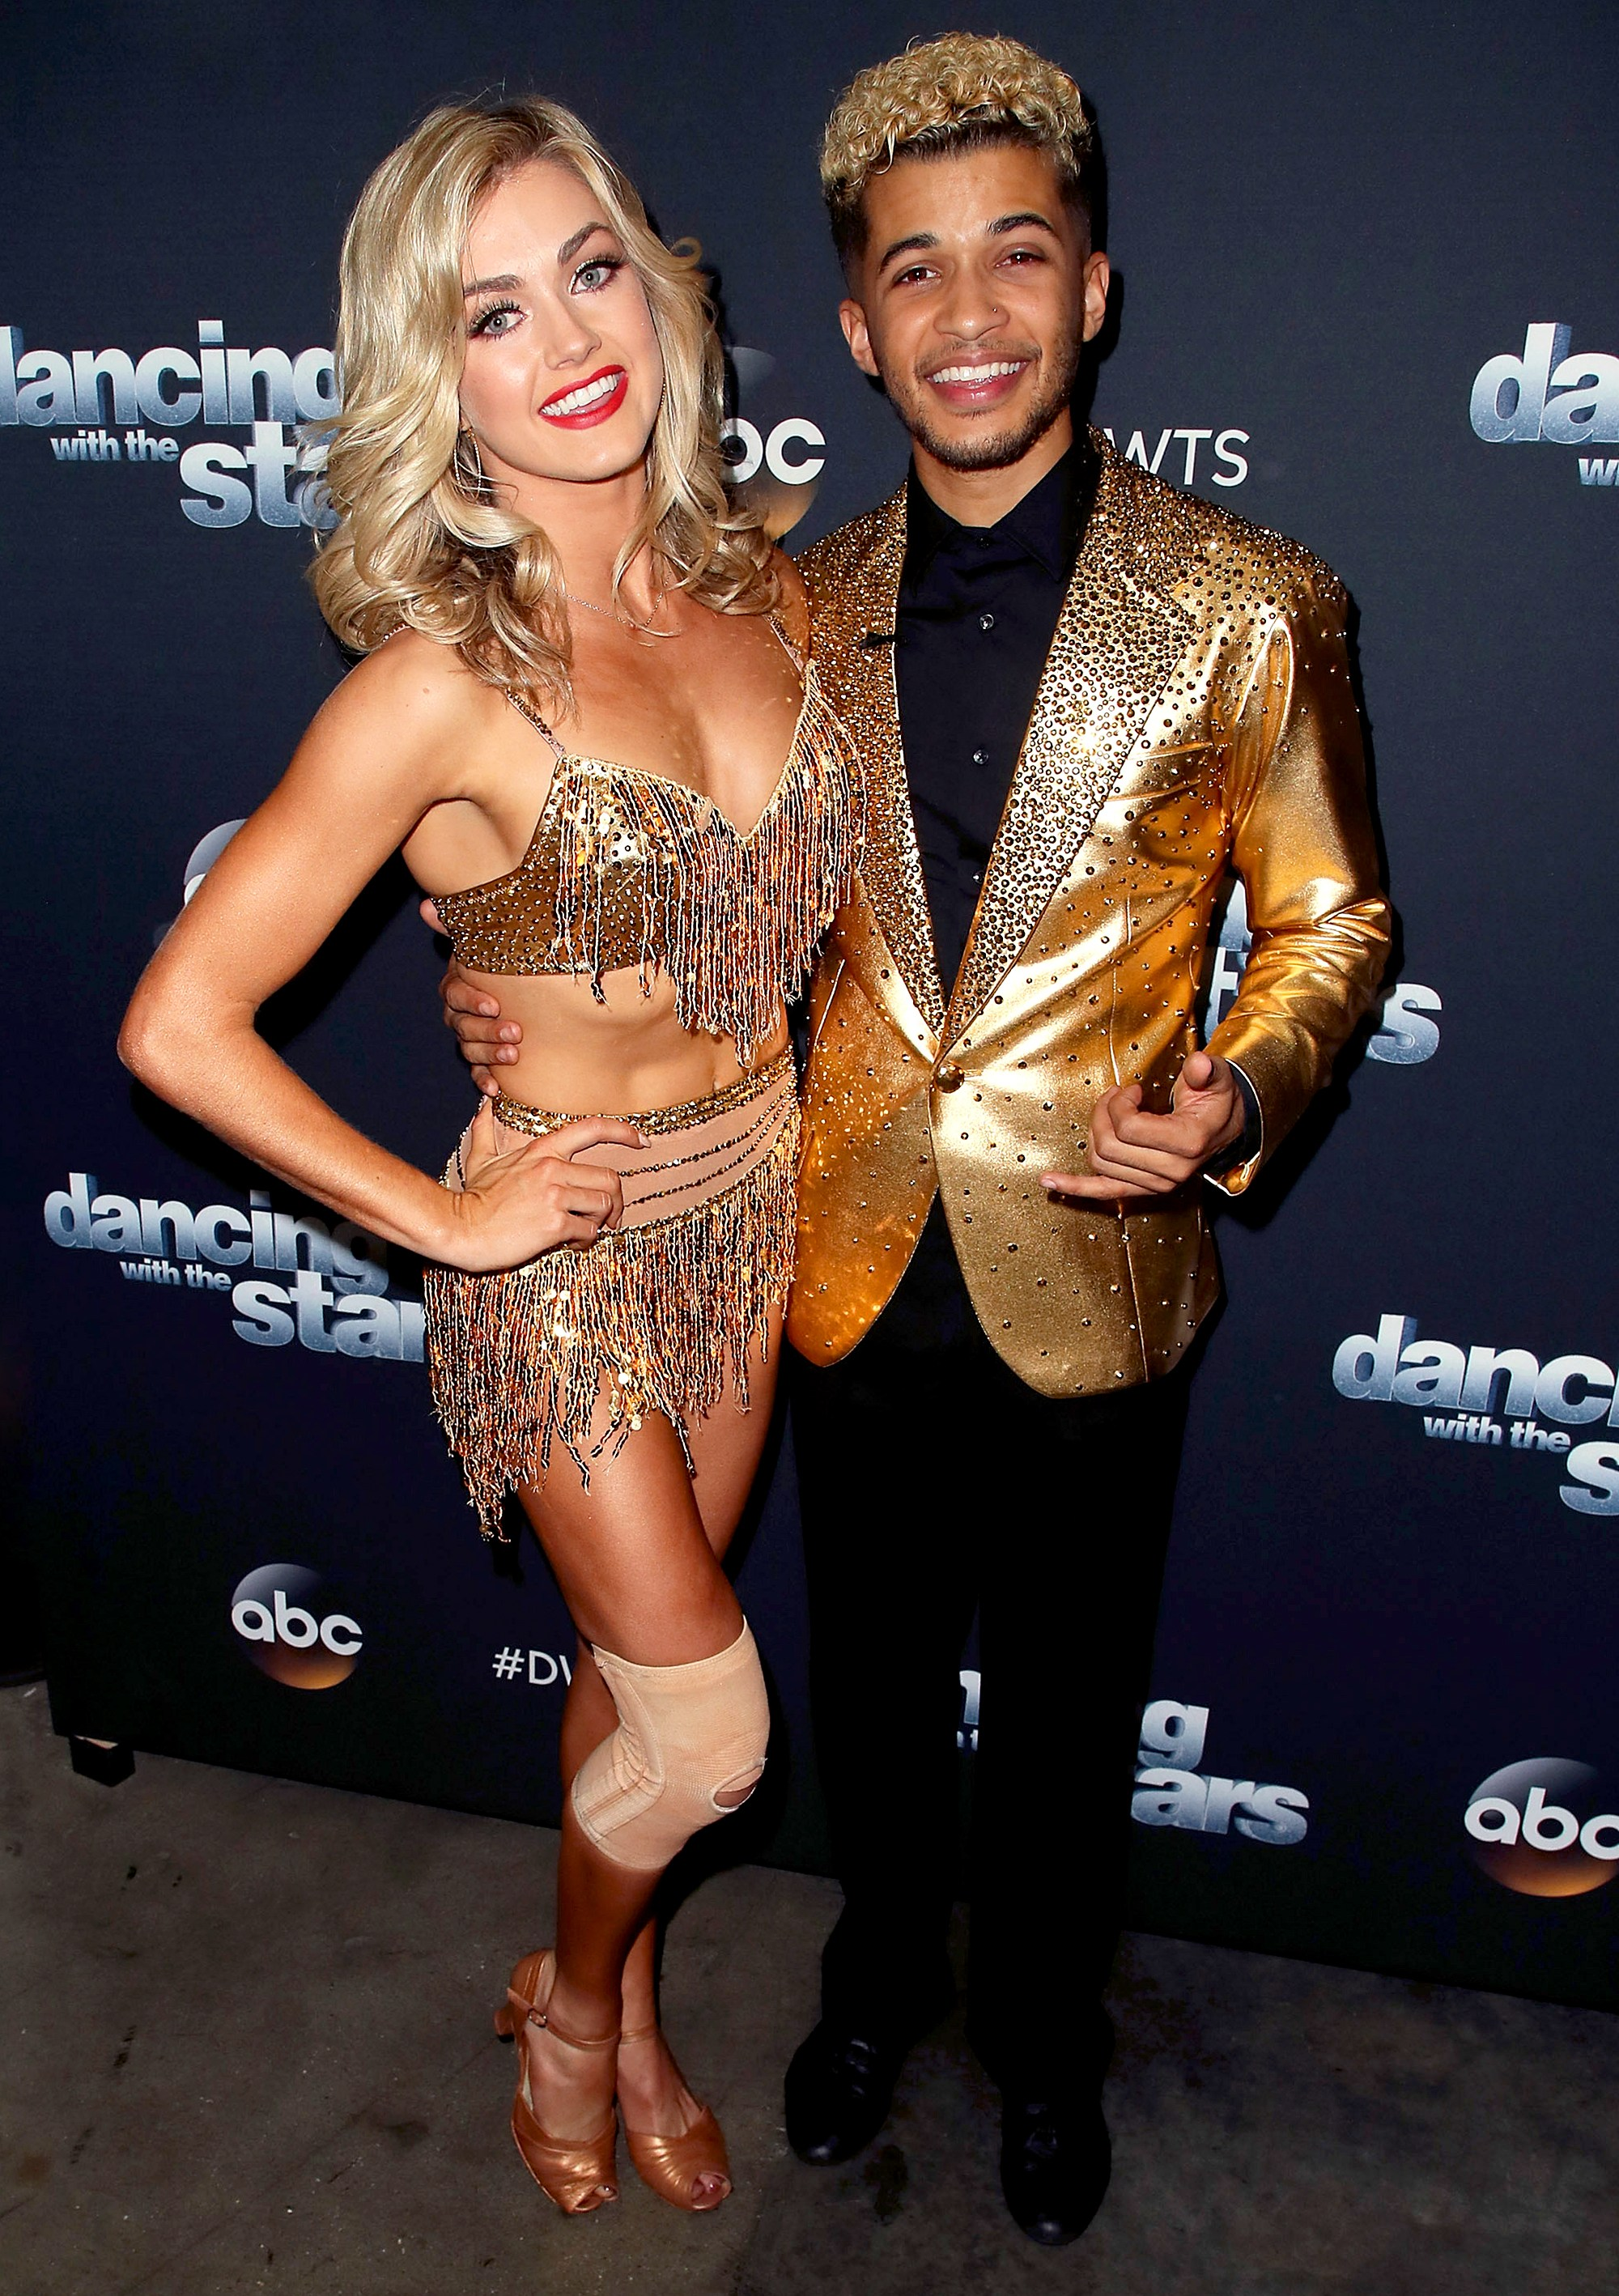 Jordan Fisher and Lindsay Arnold pose at Dancing with the Stars season 25 at CBS Televison City on November 13, 2017 in Los Angeles, California.